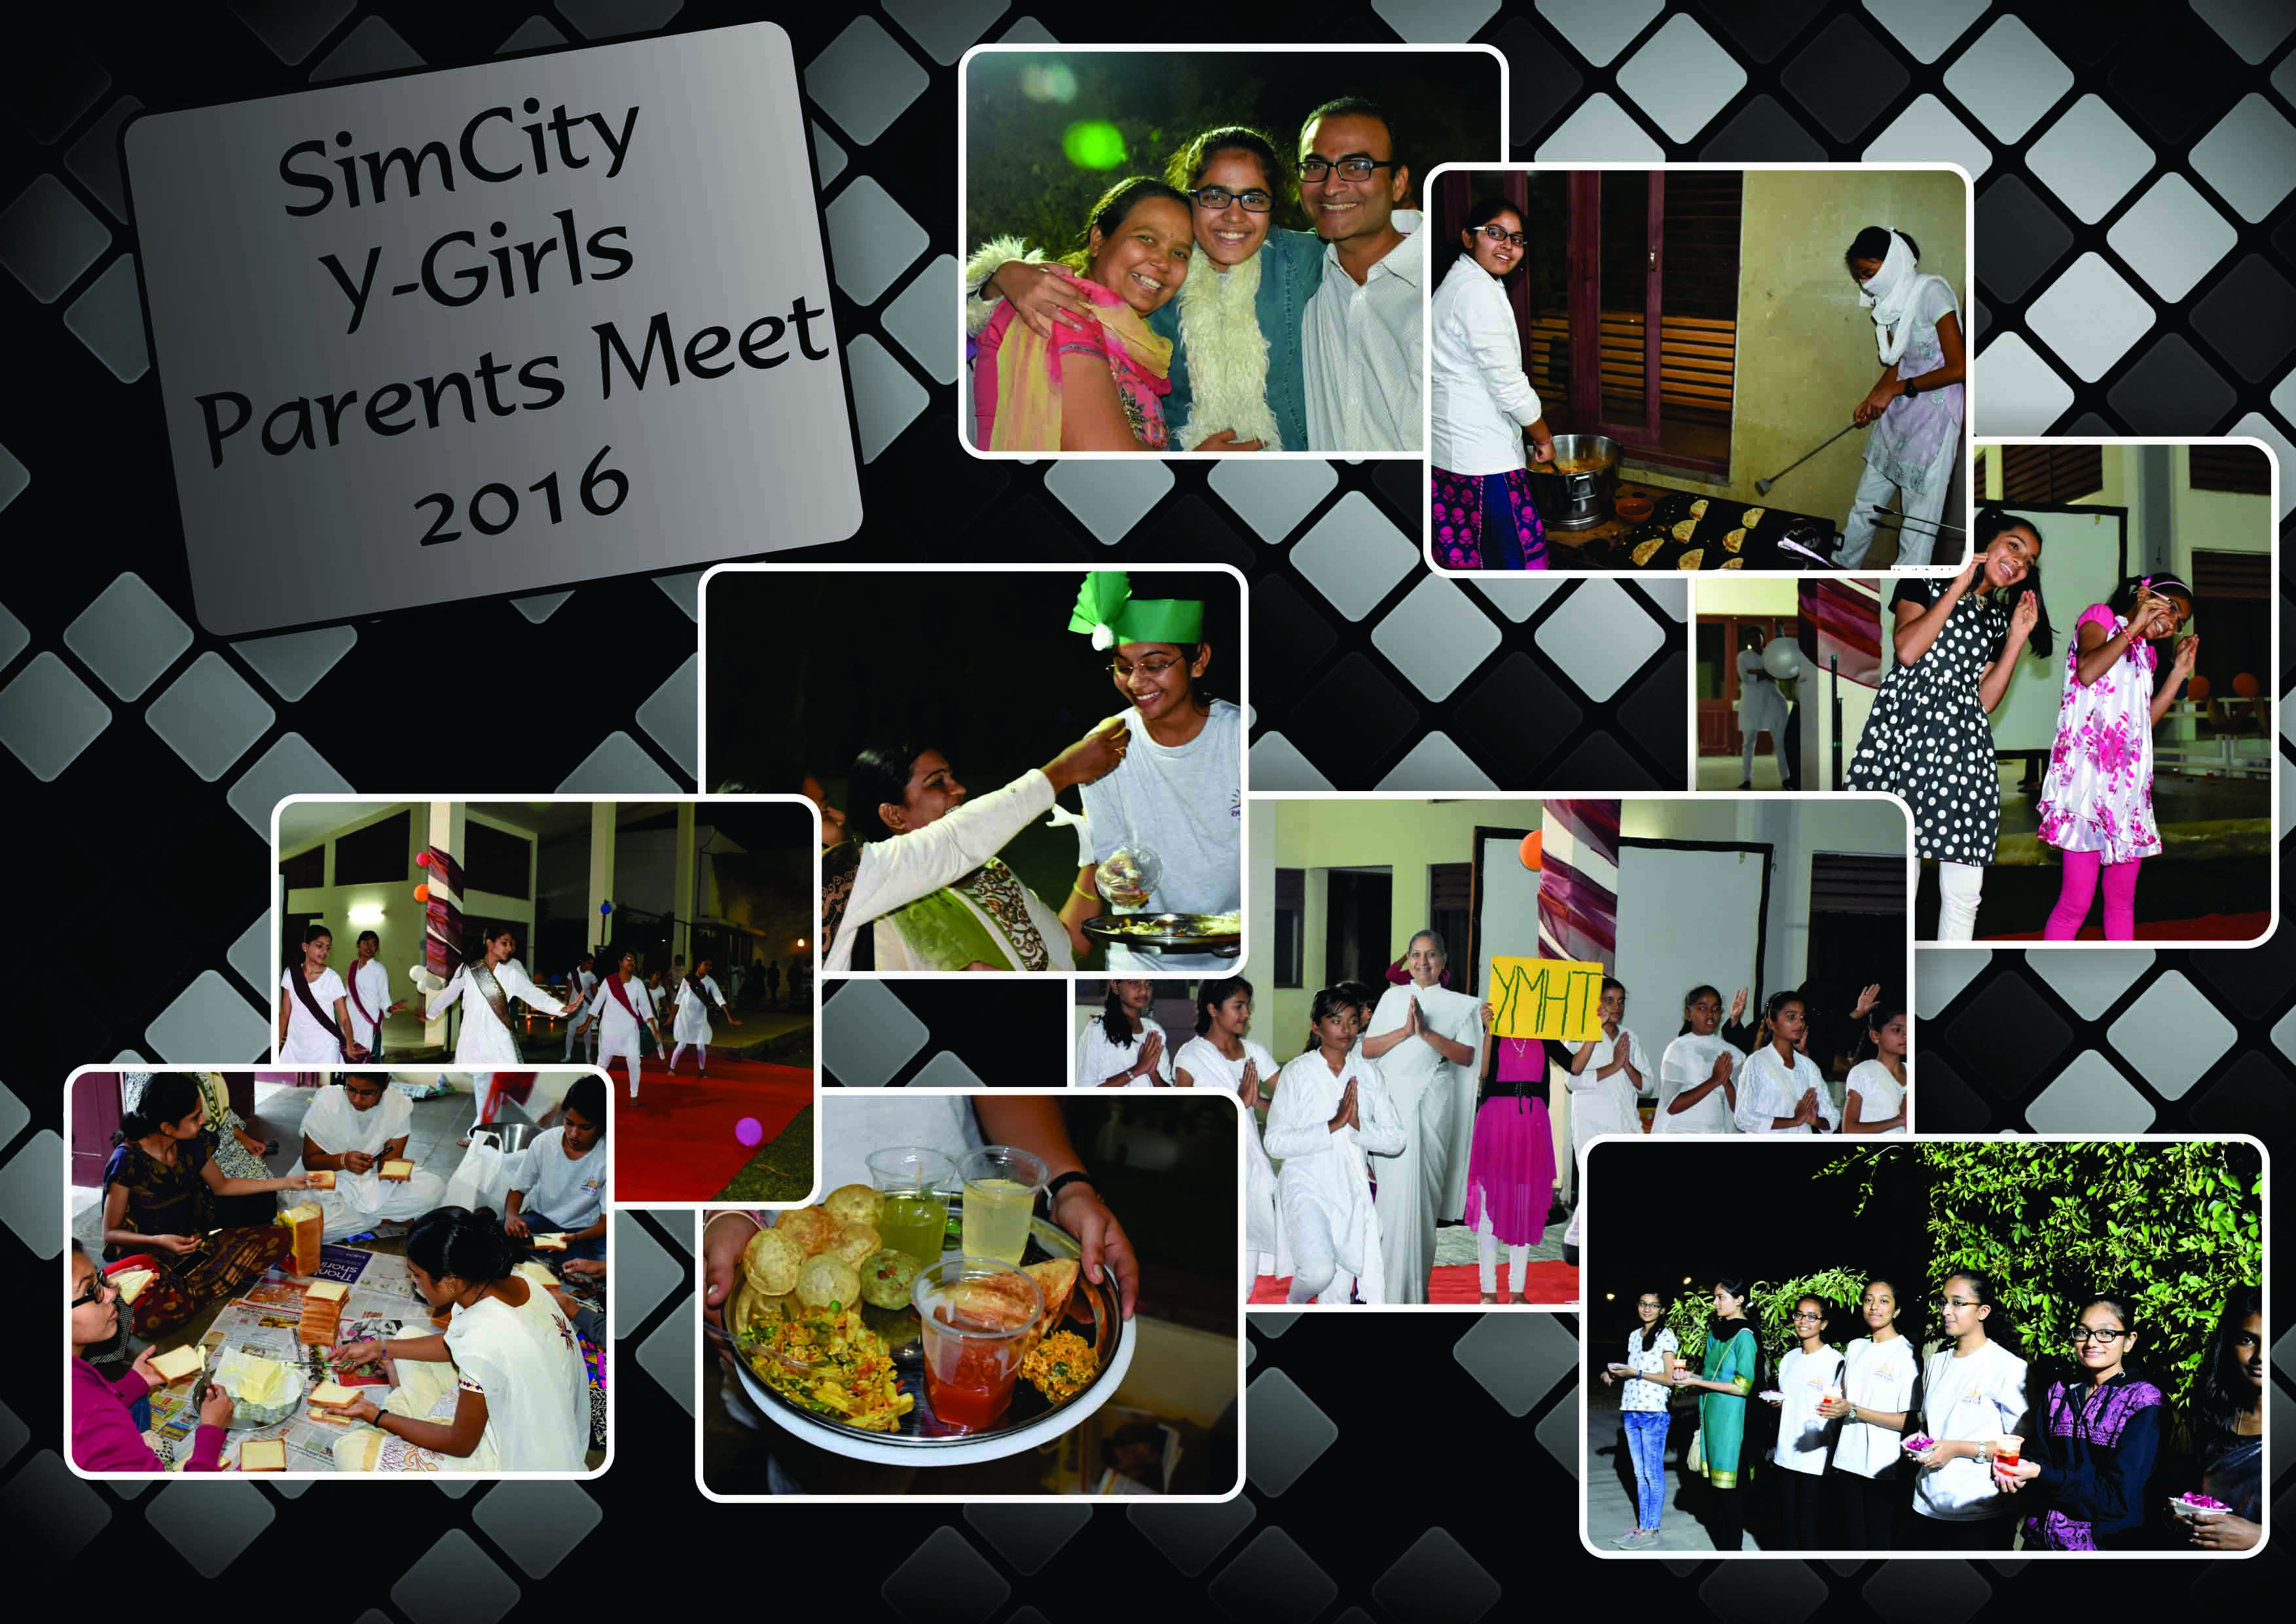 Simcity Y Girls Parents Meet 2016